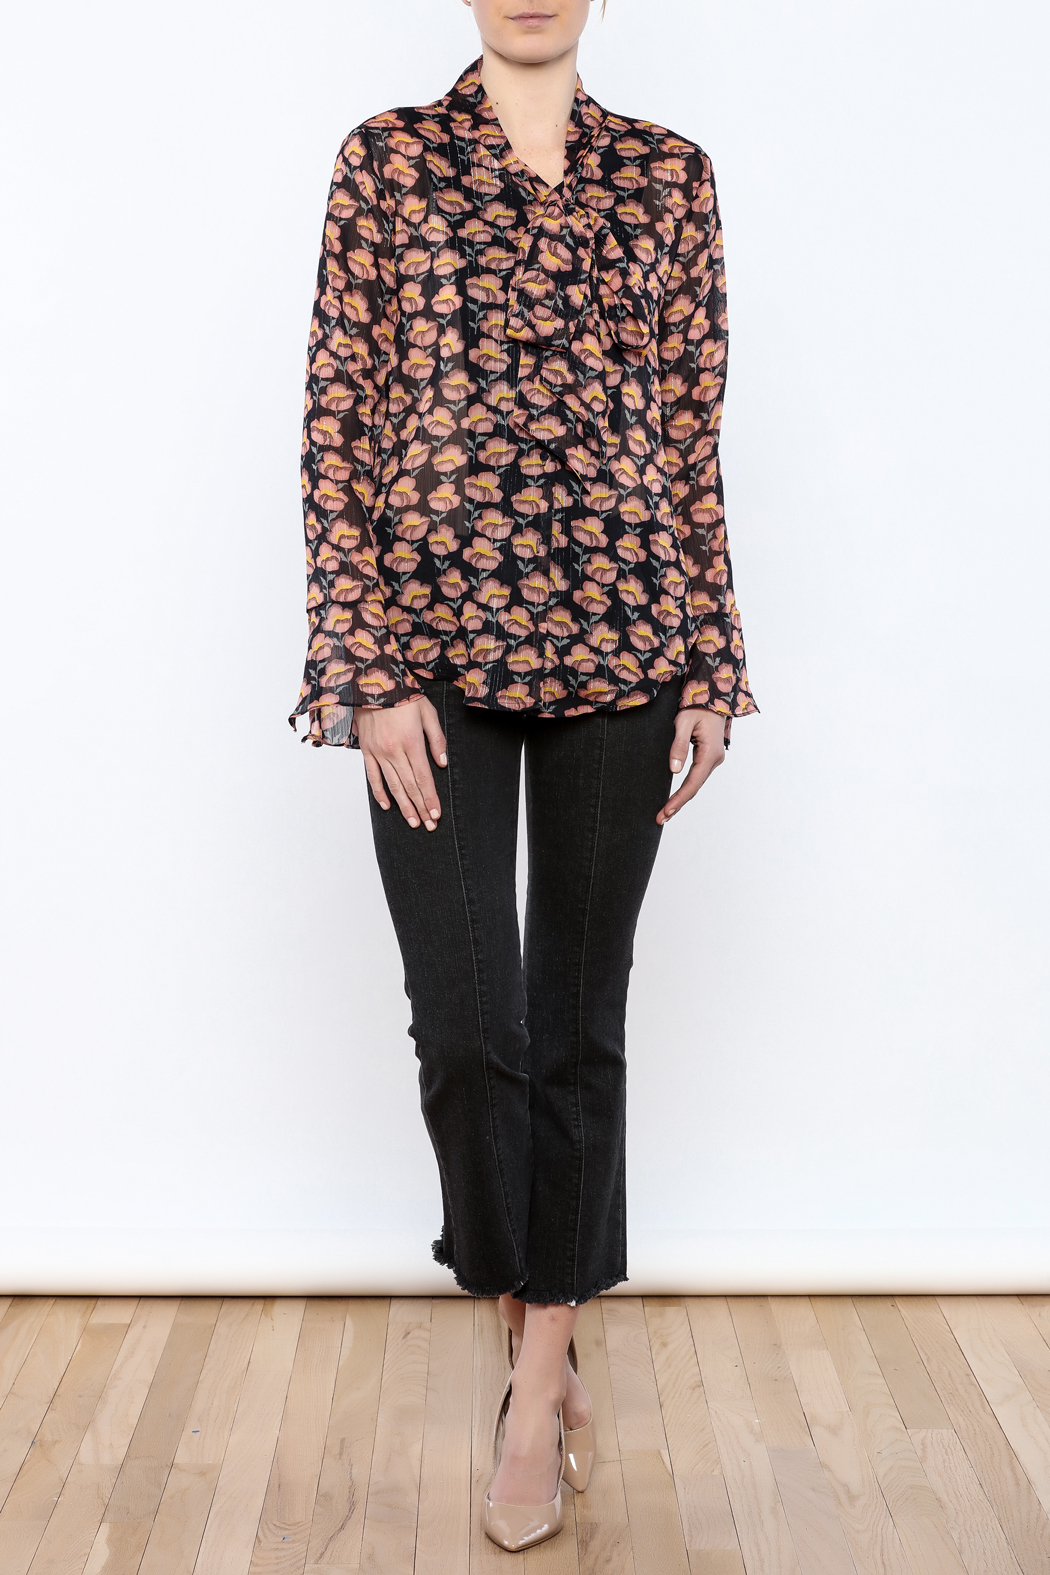 Pinkyotto Flowing Florals Tie Blouse - Front Full Image